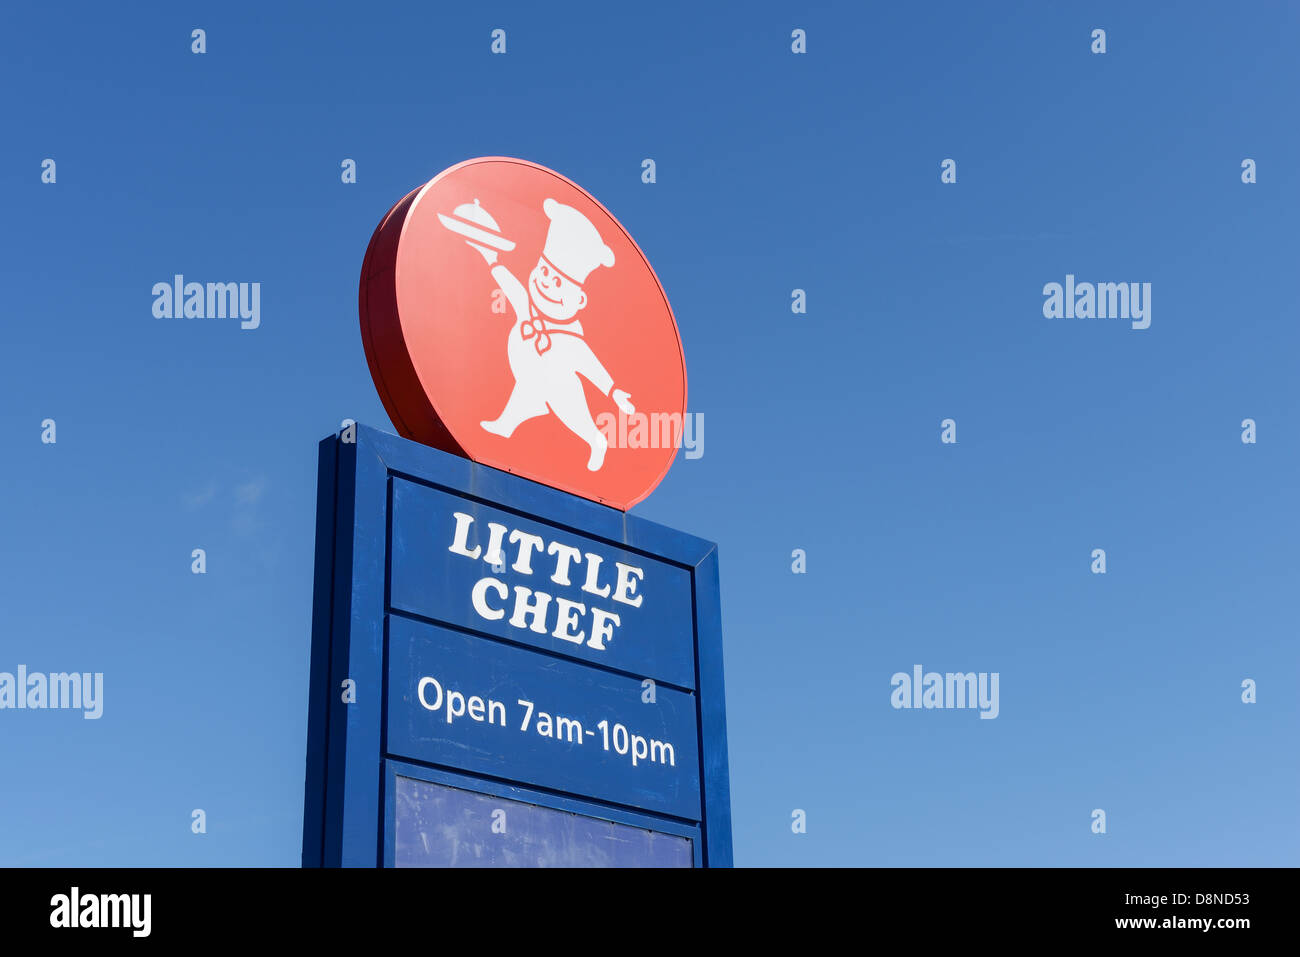 Little Chef roadside restaurant chain sign and logo - Stock Image